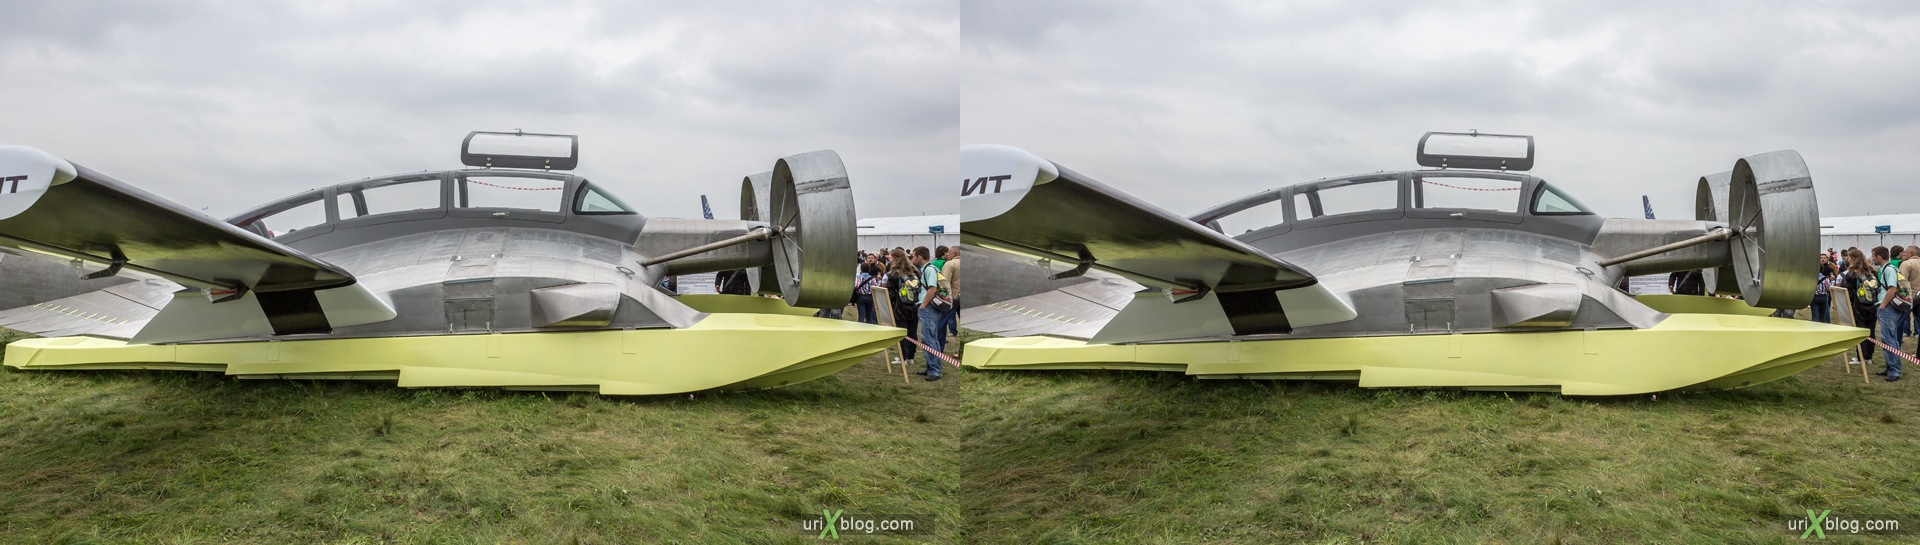 2013, Ekranoplan EK-12 Ivolga, MAKS, International Aviation and Space Salon, Russia, Ramenskoye airfield, airplane, 3D, stereo pair, cross-eyed, crossview, cross view stereo pair, stereoscopic